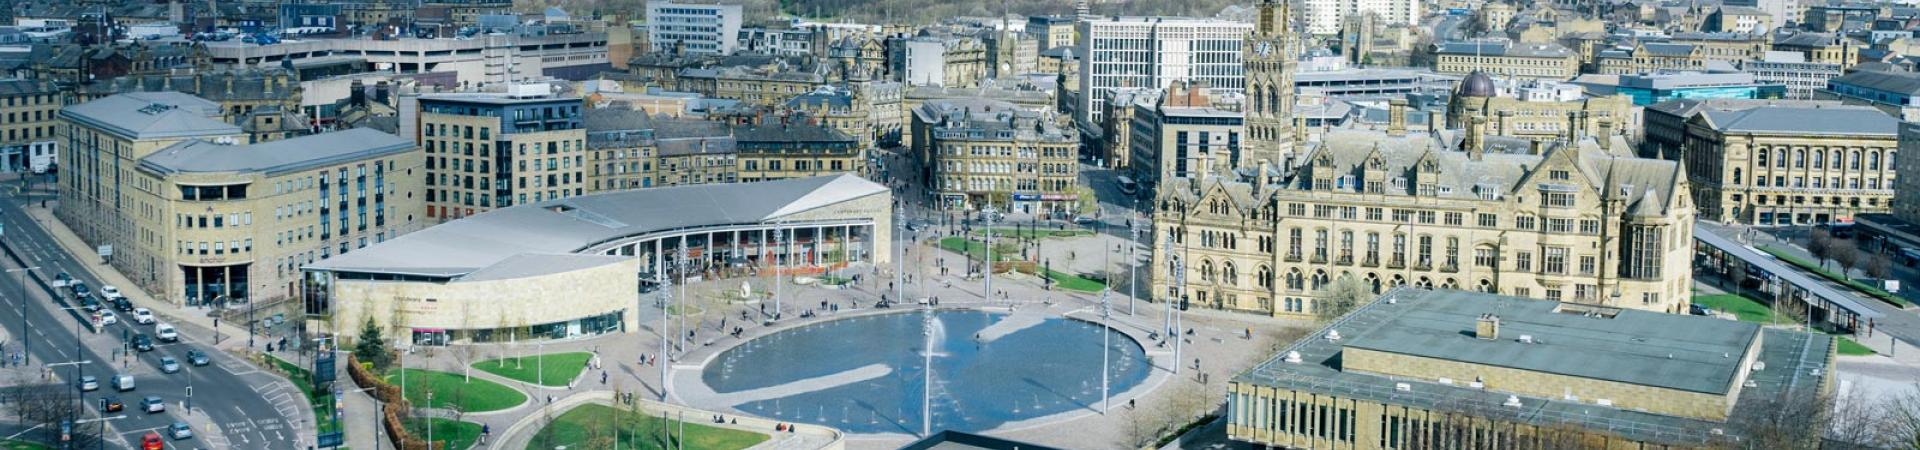 Aerial view from our Student Accommodation in Bradford